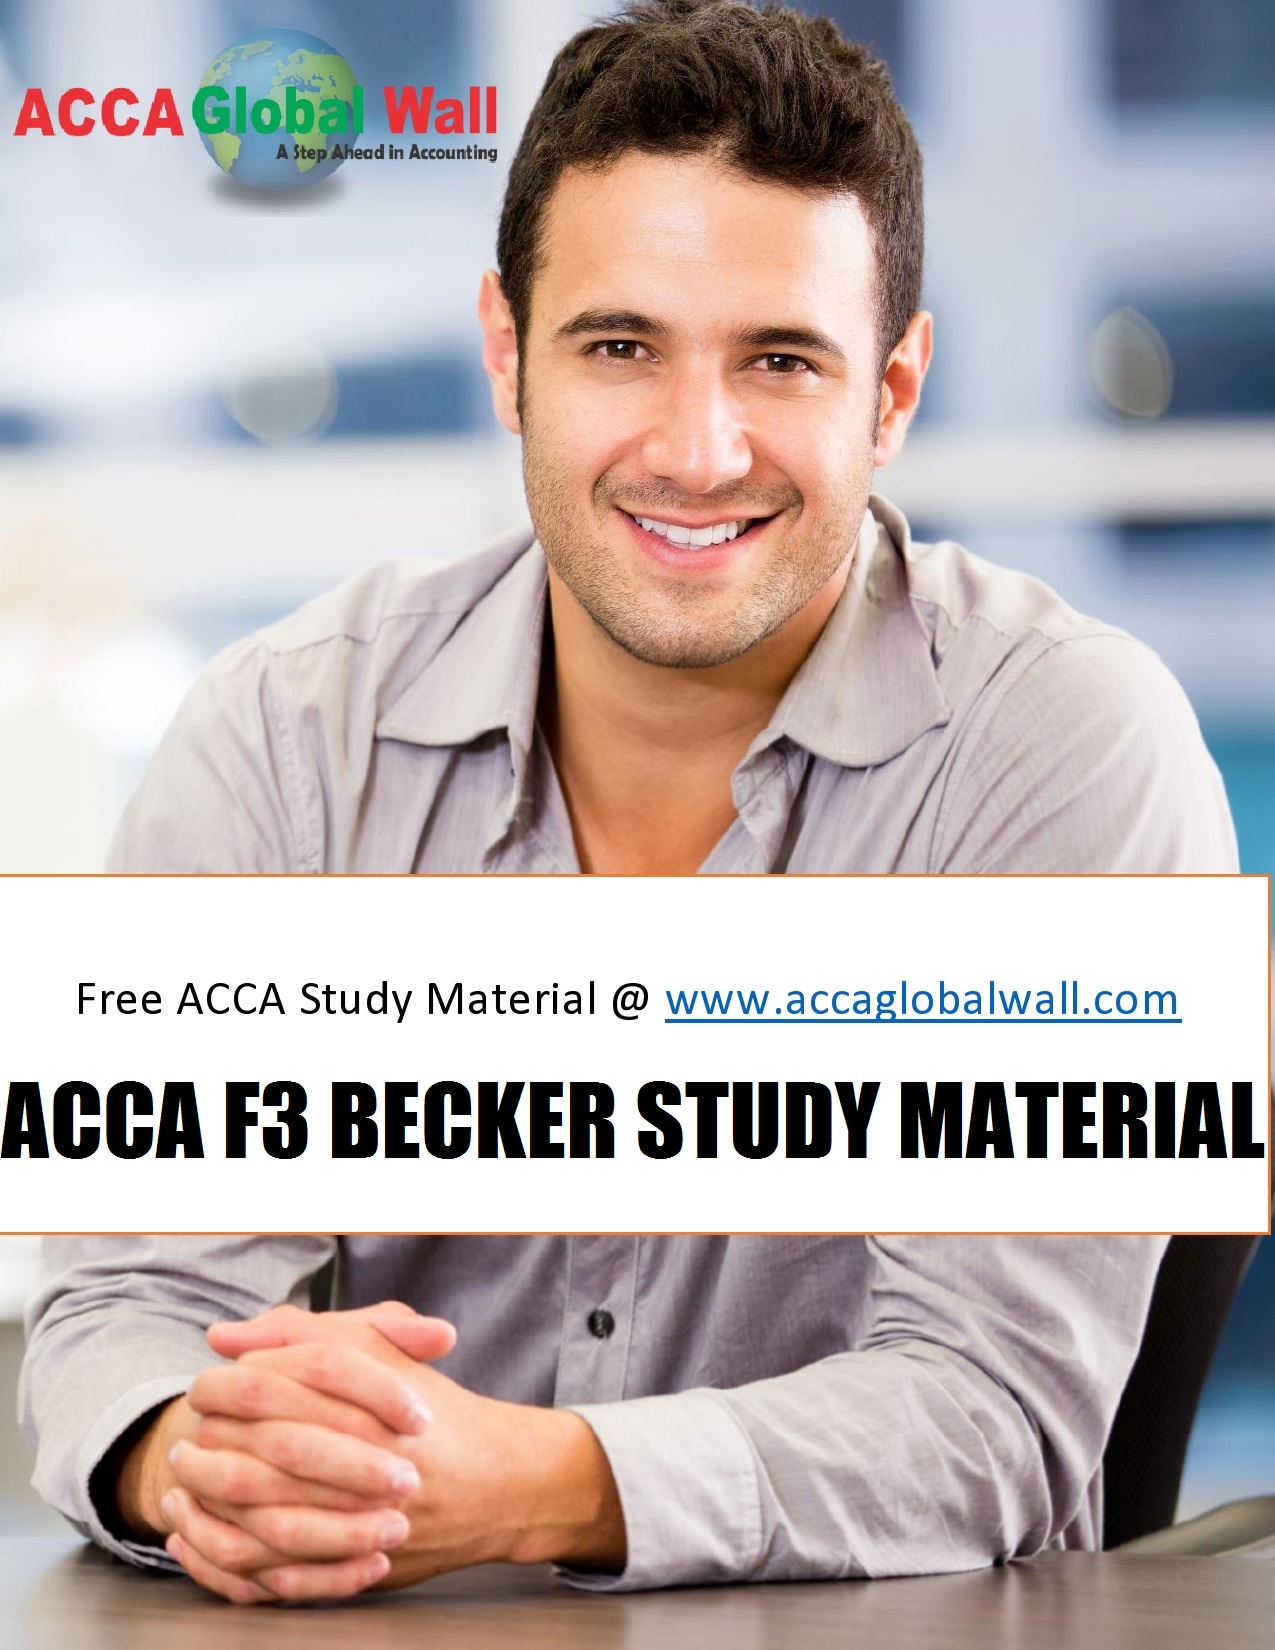 ACCA F3 BECKER STUDY MATERIAL ACCAGLOBALWALL.COM